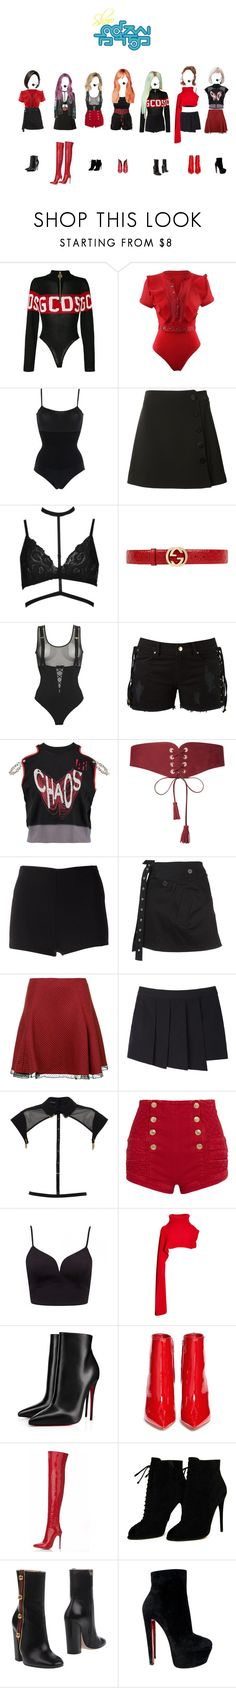 """Show Music Core:""Comeback Stage"" G.R.L.Z-Whatta Man + Win Speech (emmotional) and Encore"" by ygentertainment on Polyvore featuring mode, GCDS, Wolford, Misha Nonoo, Boohoo, Gucci, Chantal Thomass, Amapô, Vivienne Westwood Anglomania et Maison Boinet"